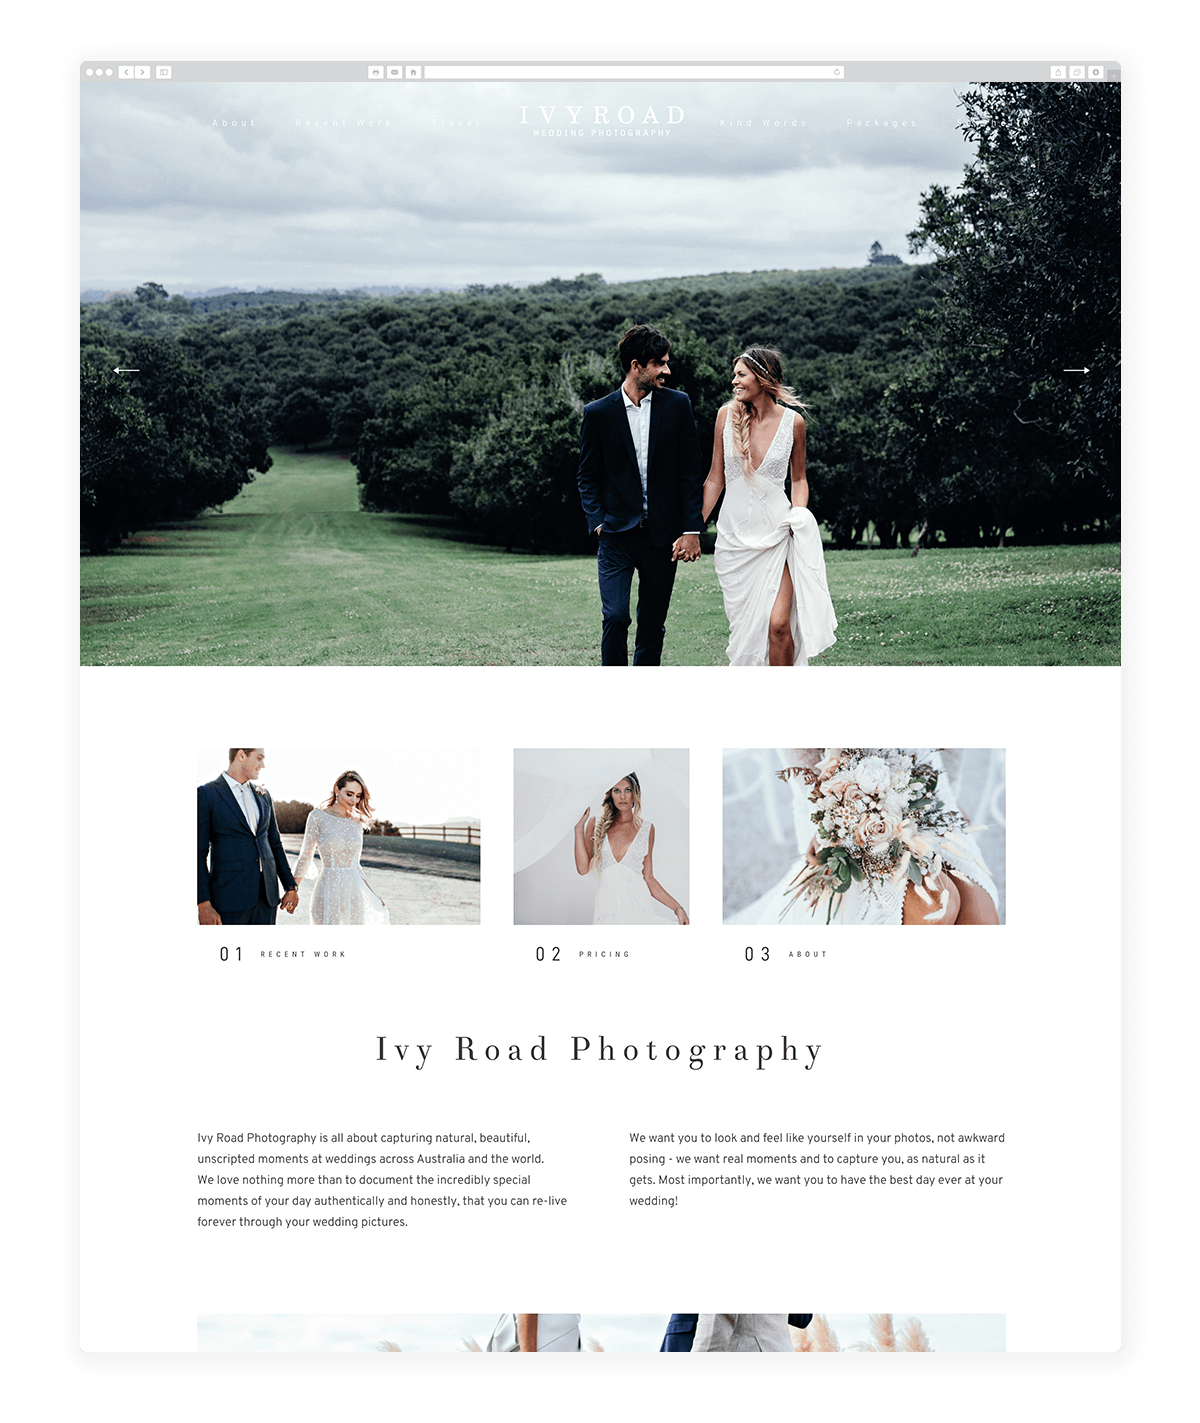 15 amazing photography website built with Fiji theme, Ivy Road photography